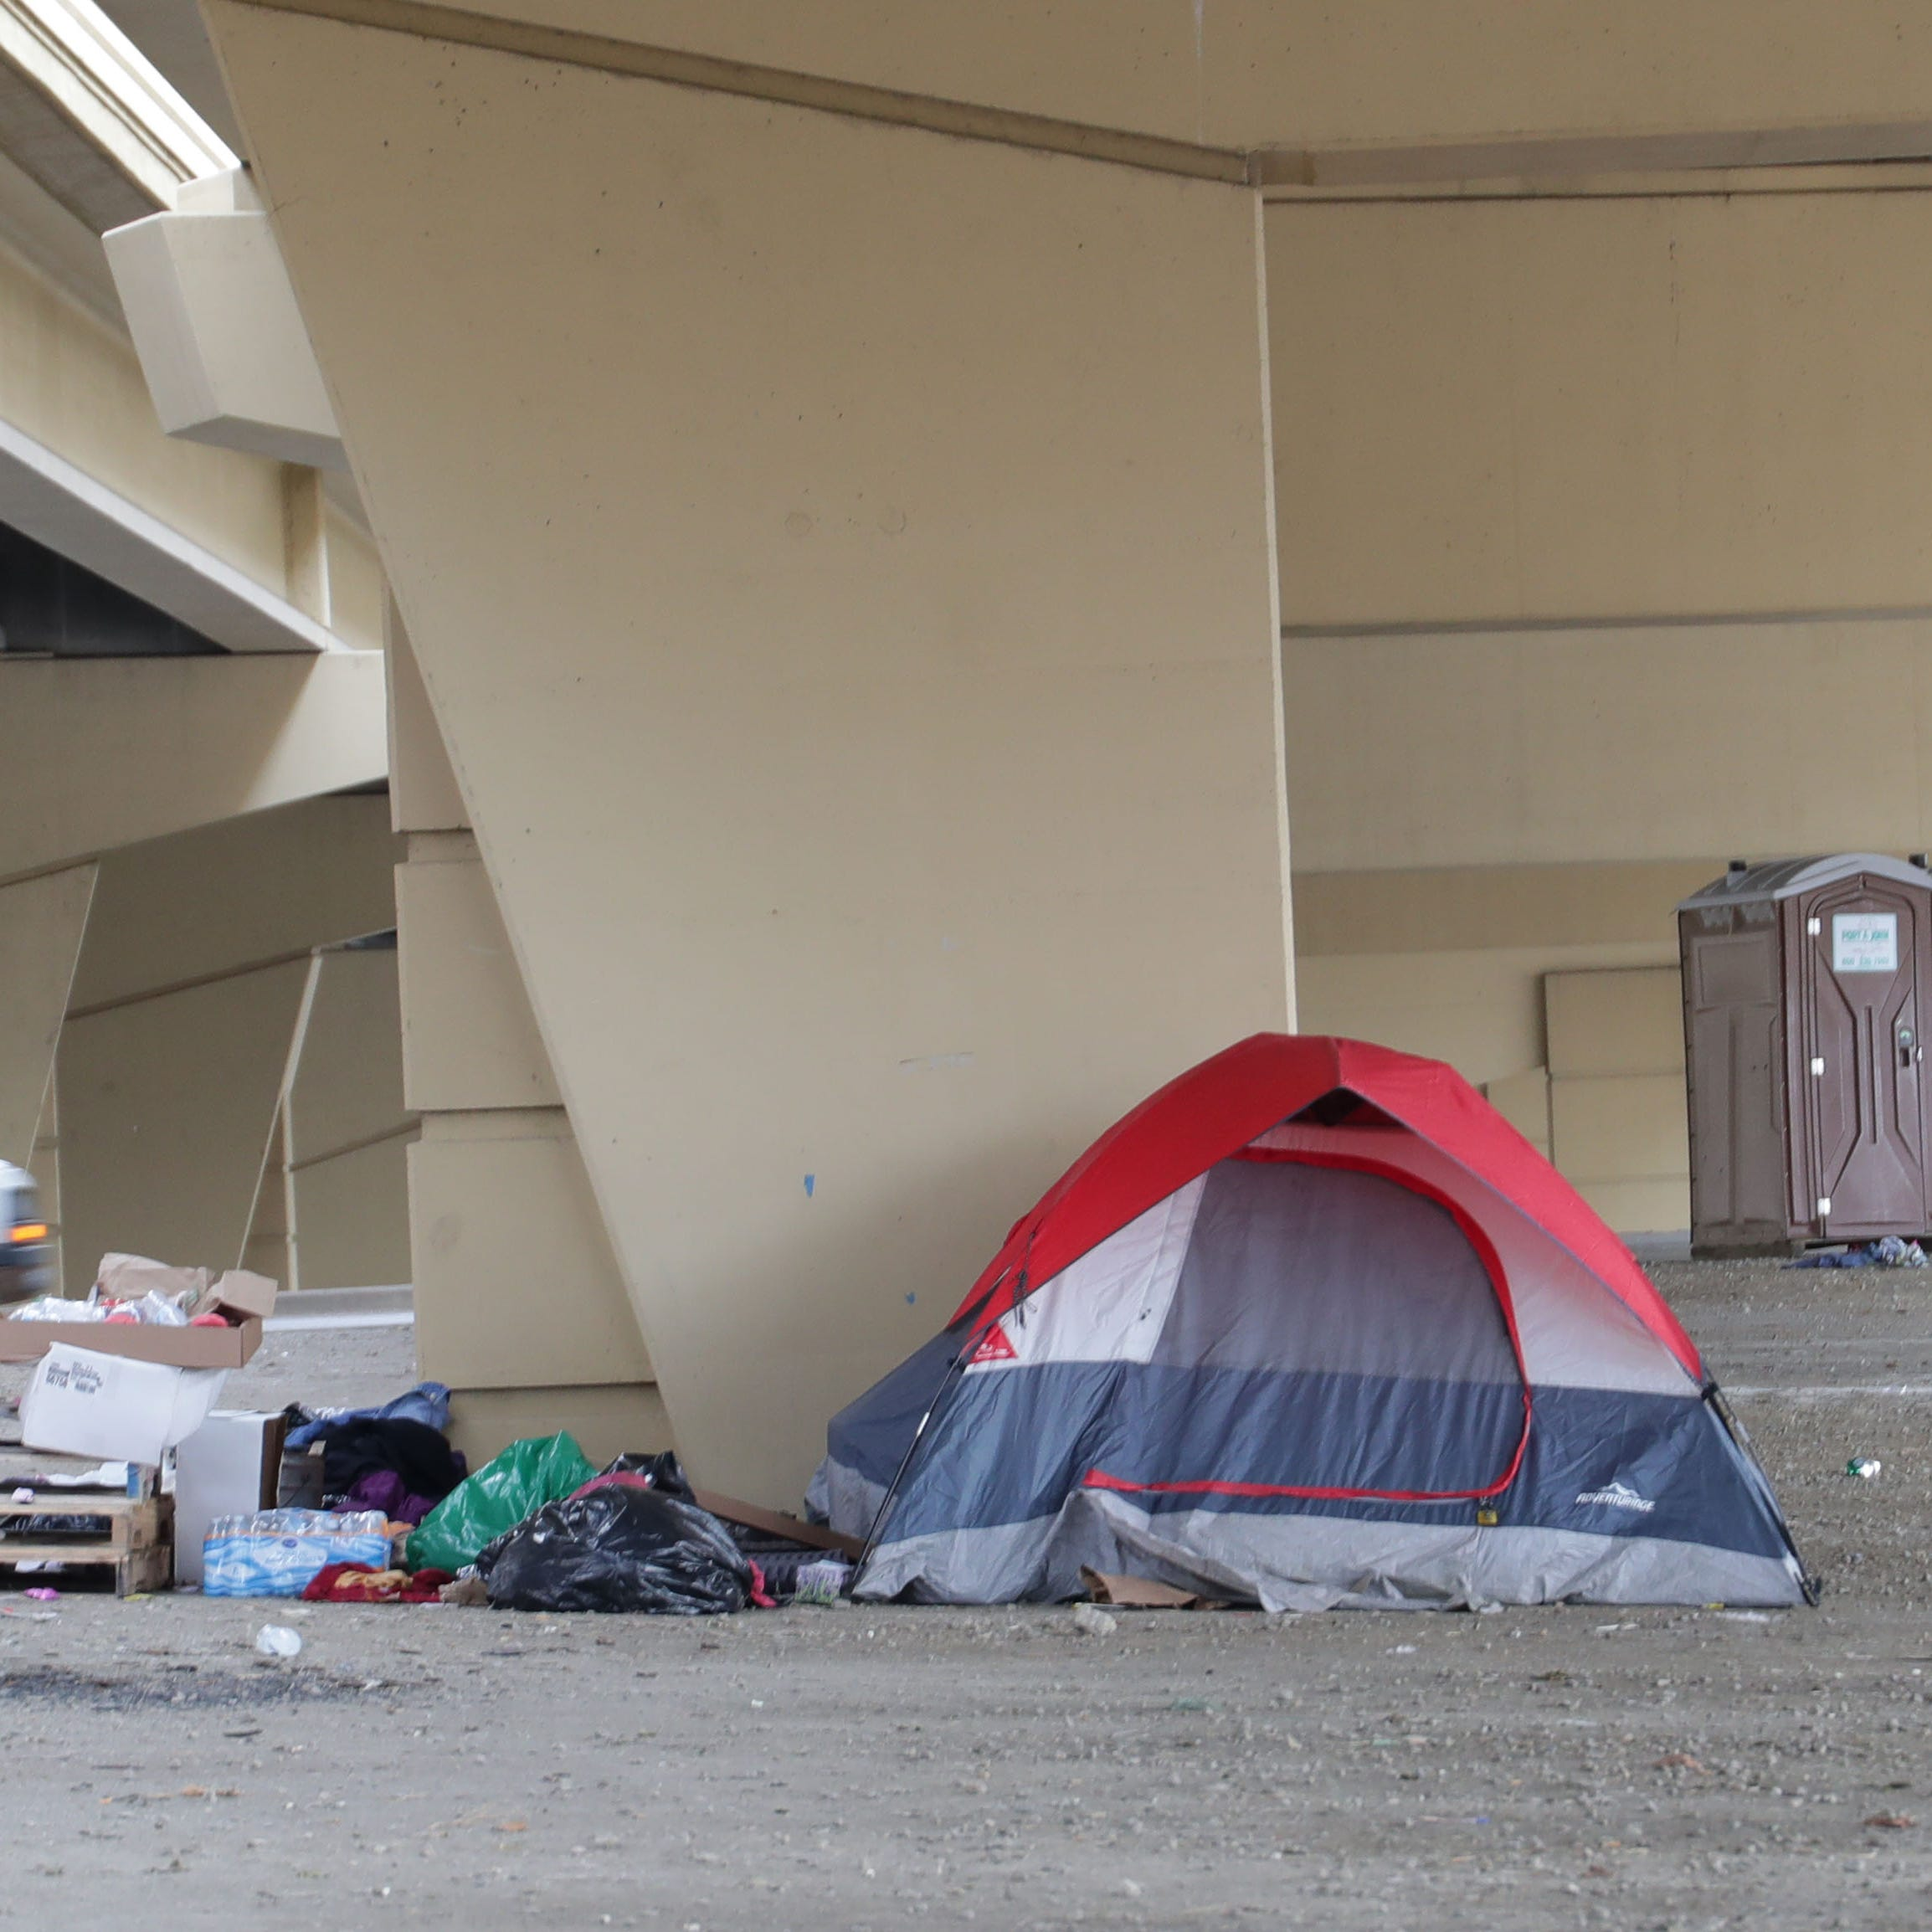 Downtown Milwaukee homeless encampment known as Tent City almost cleared out